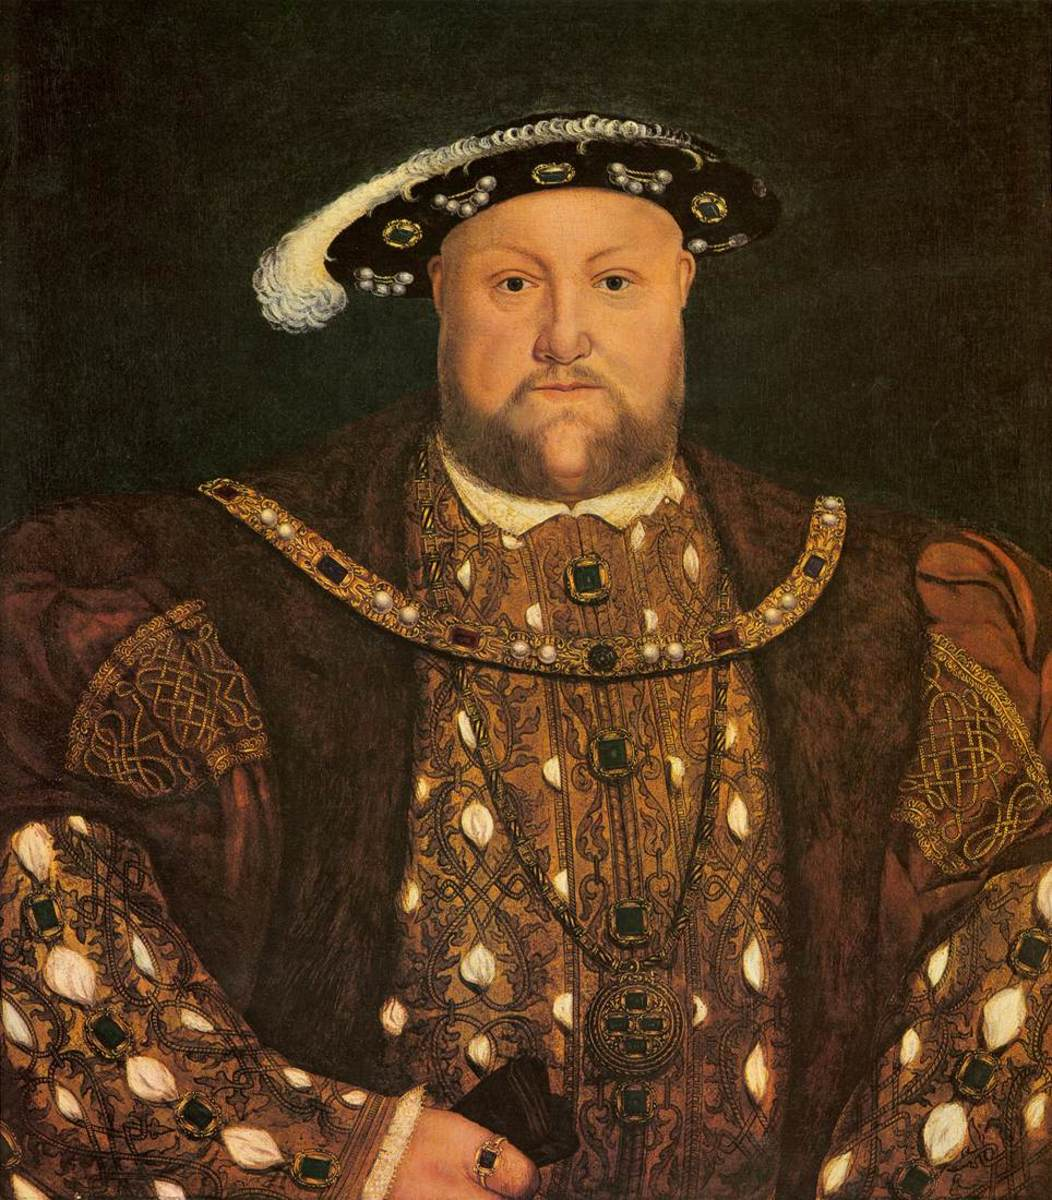 Henry VIII. Henry had an ego and a temper, but he started a dialogue for change.